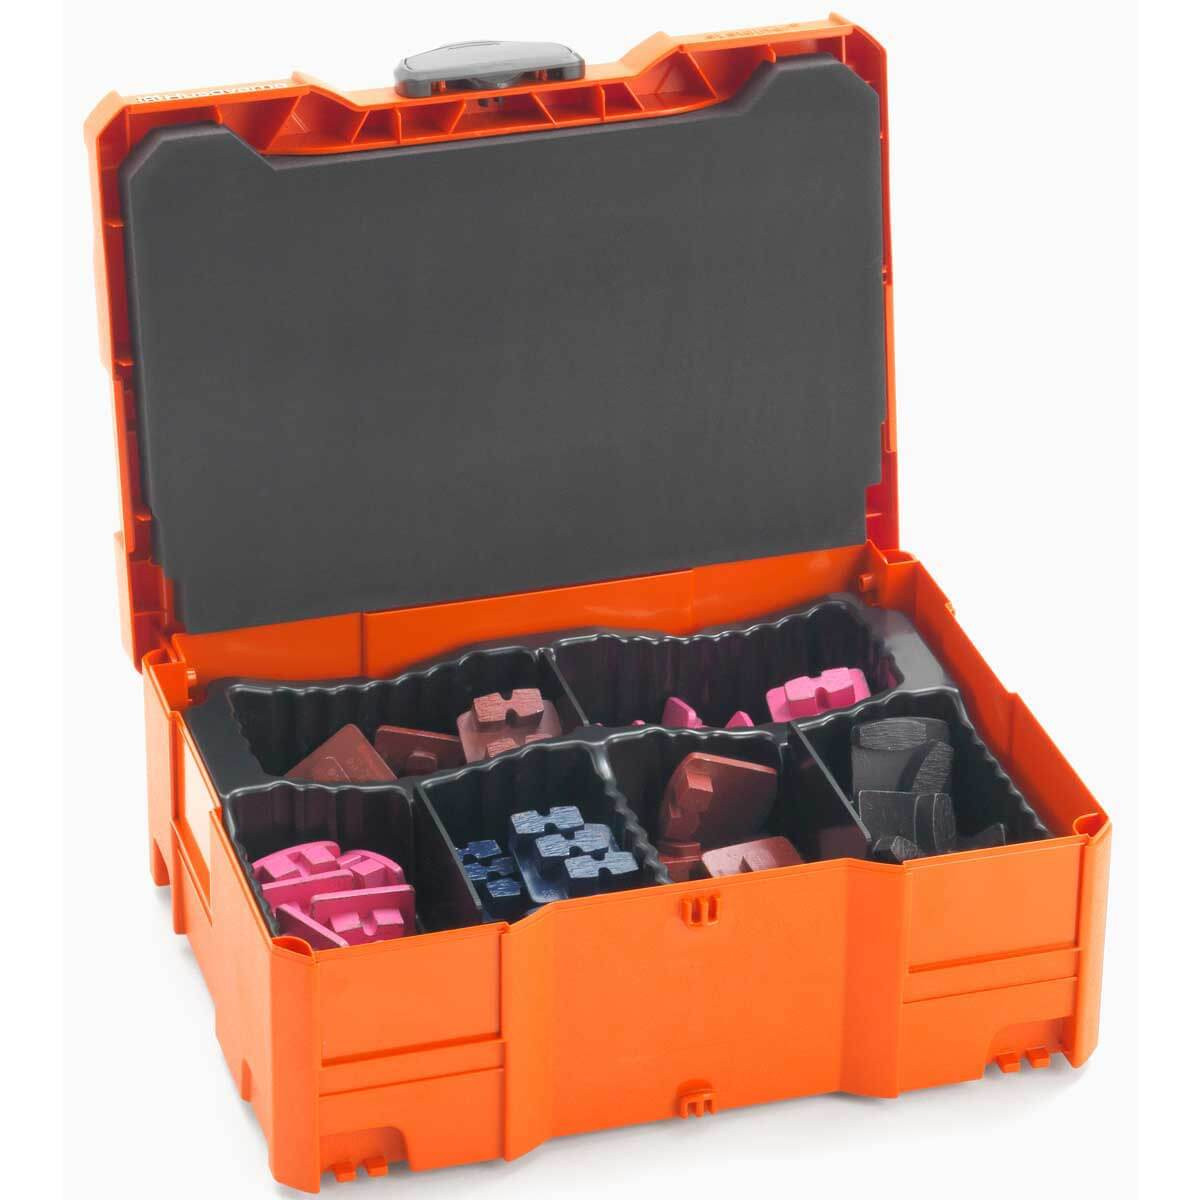 Husqvarna Accessories For Surface Preparation Tool Box